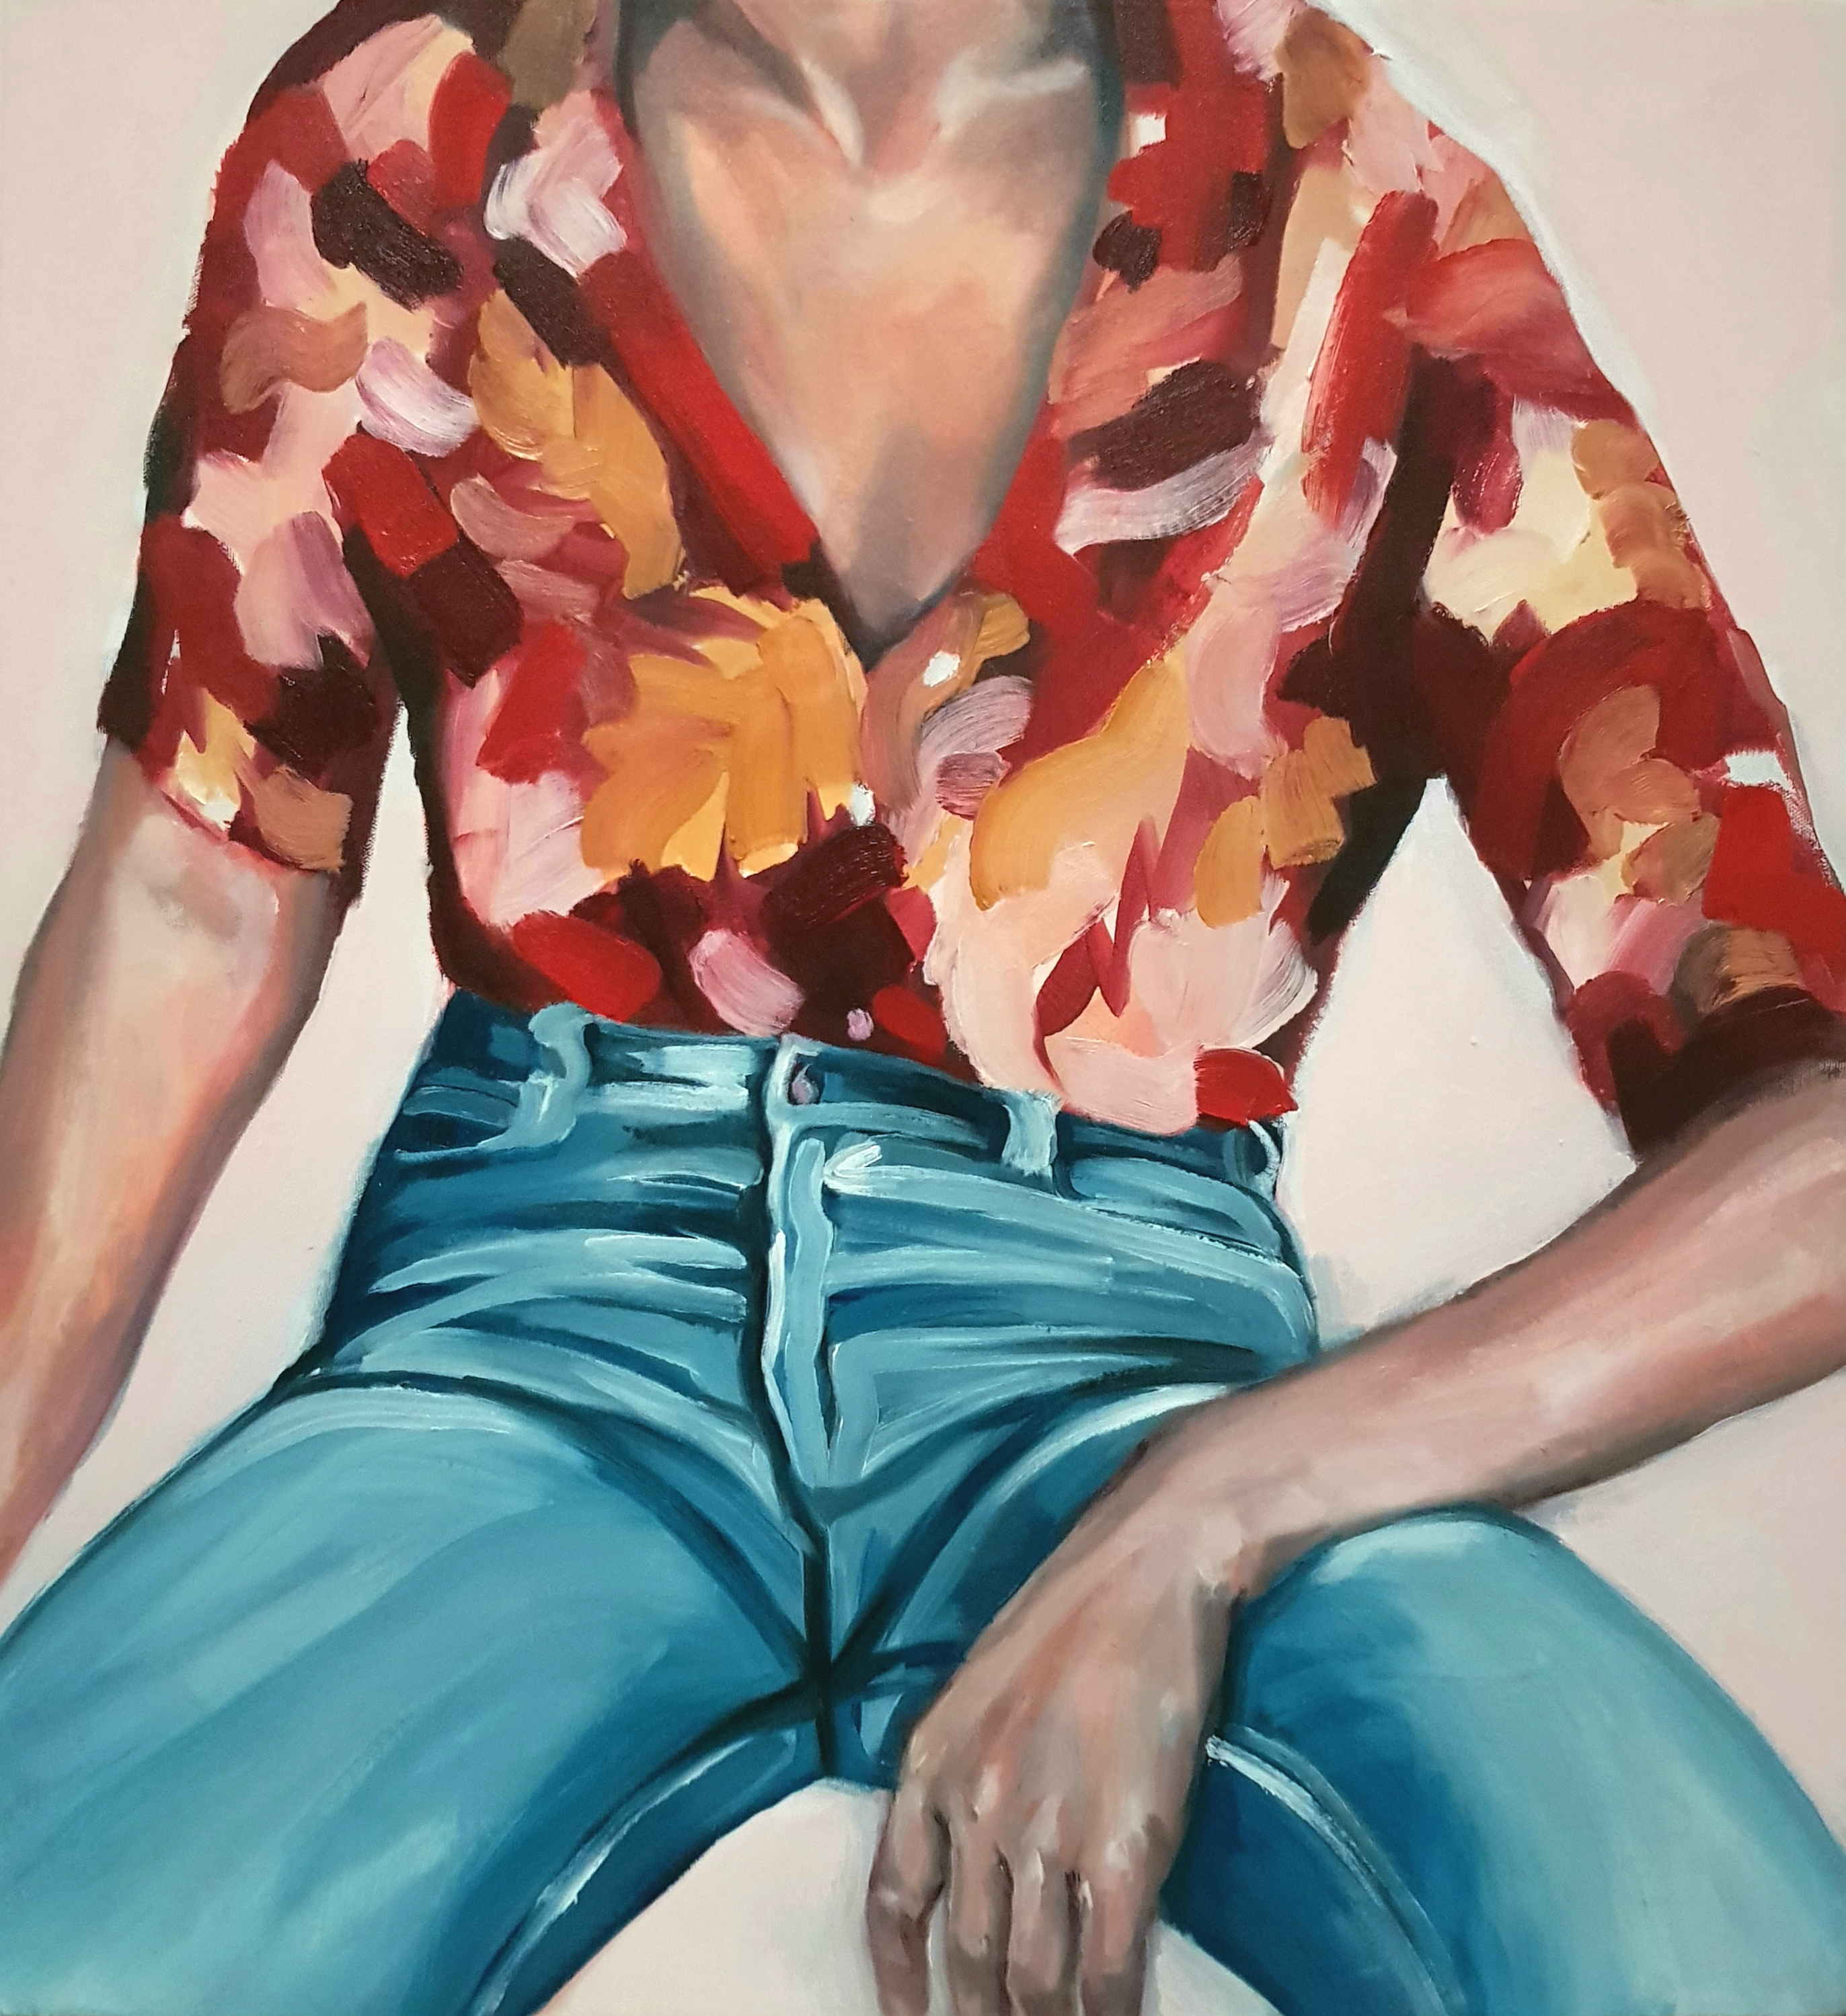 "What Does It Mean To Be A Woman, oil on canvas, 23x25"", 2018"